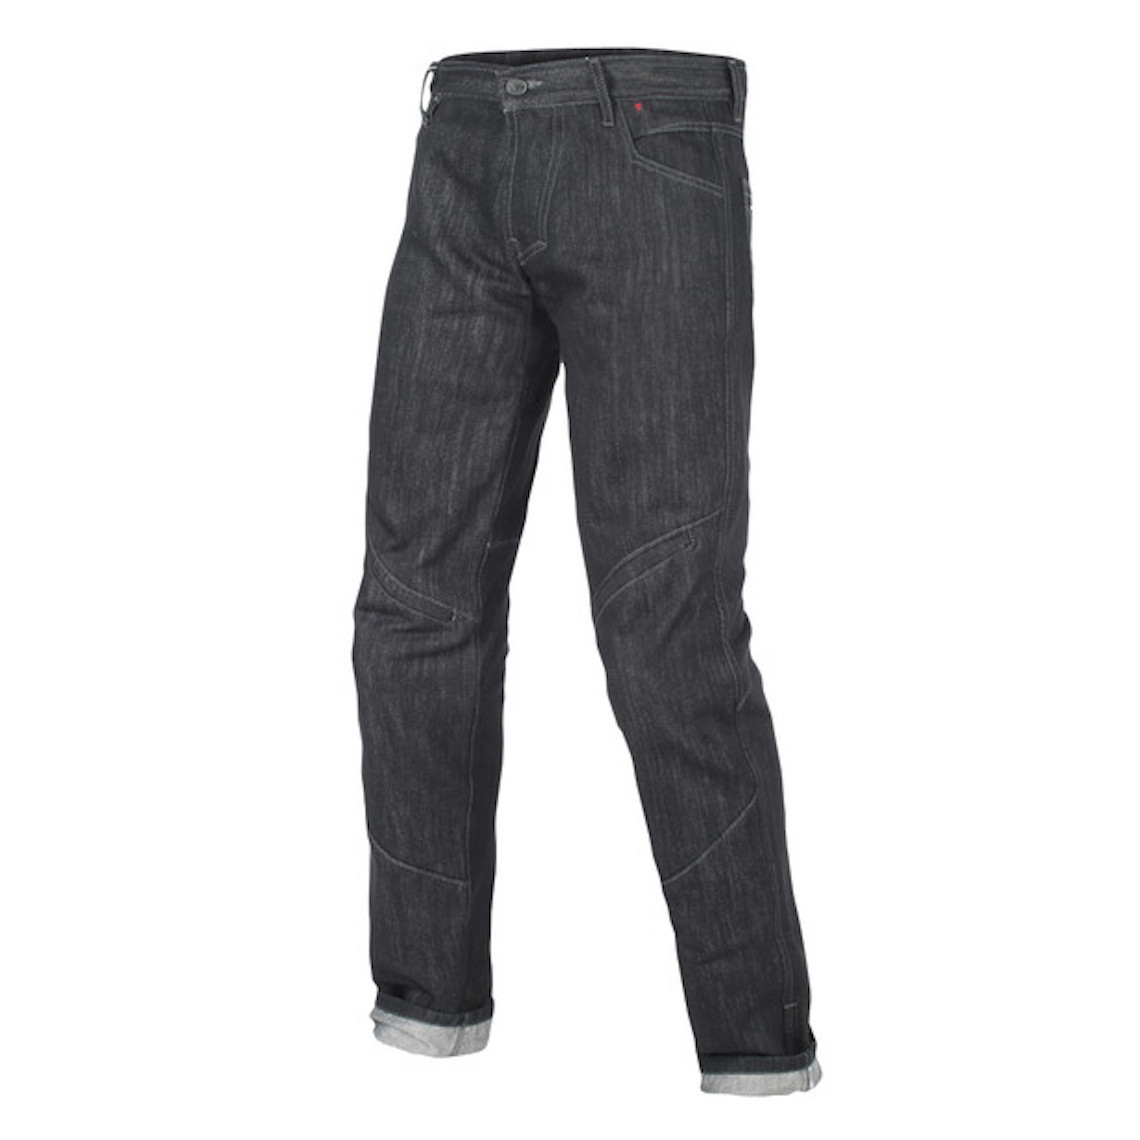 Dainese-Charger-jeans